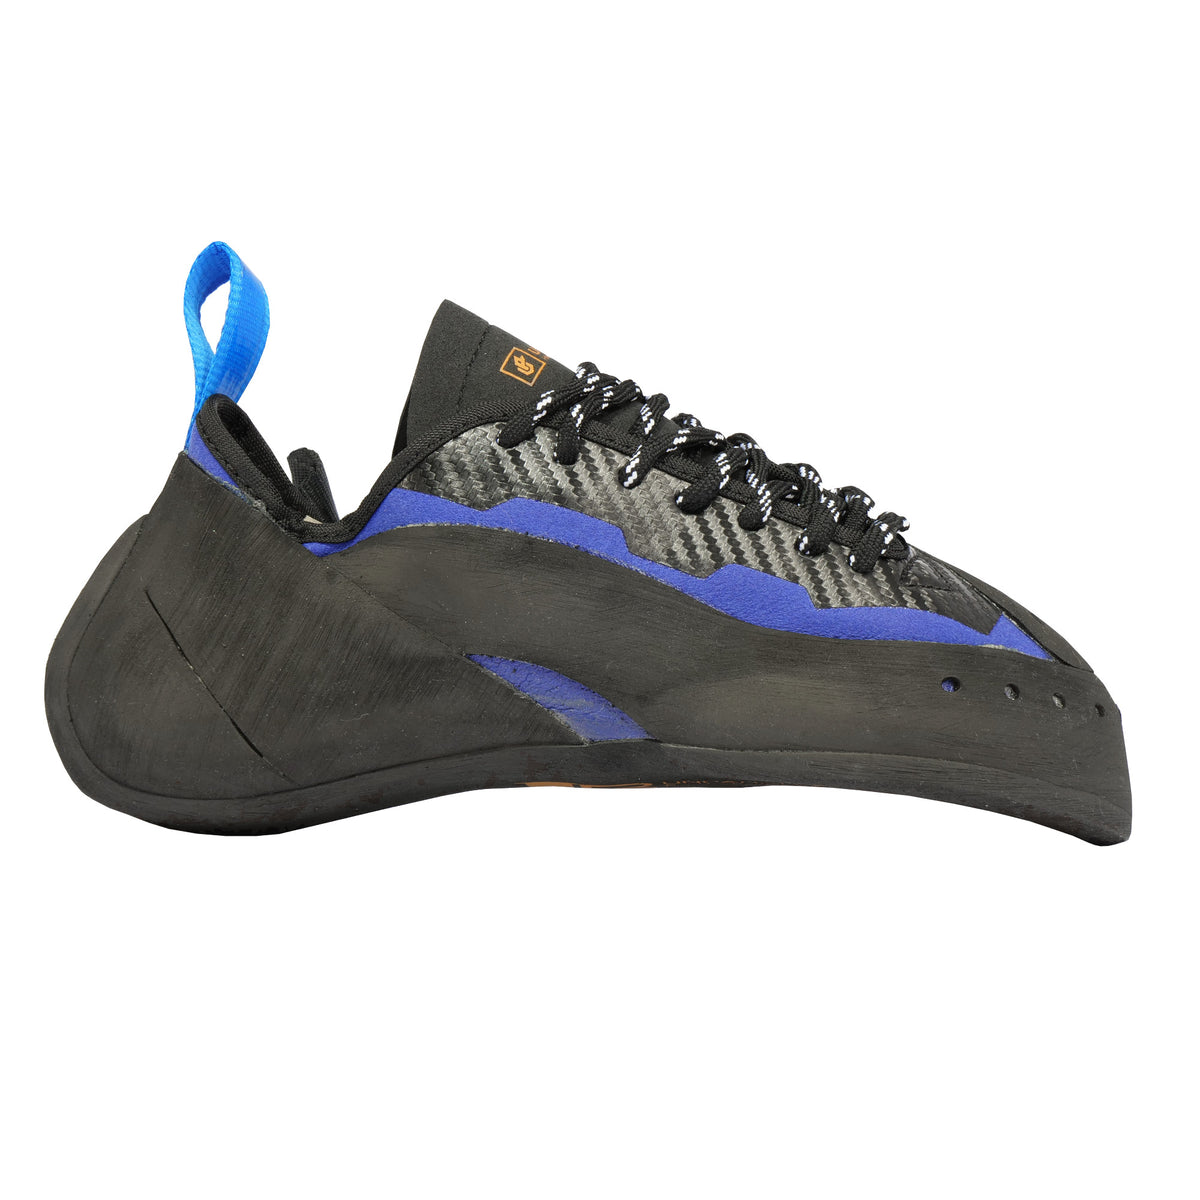 Unparallel Sirius Lace climbing shoe, outer side view in black/blue colours